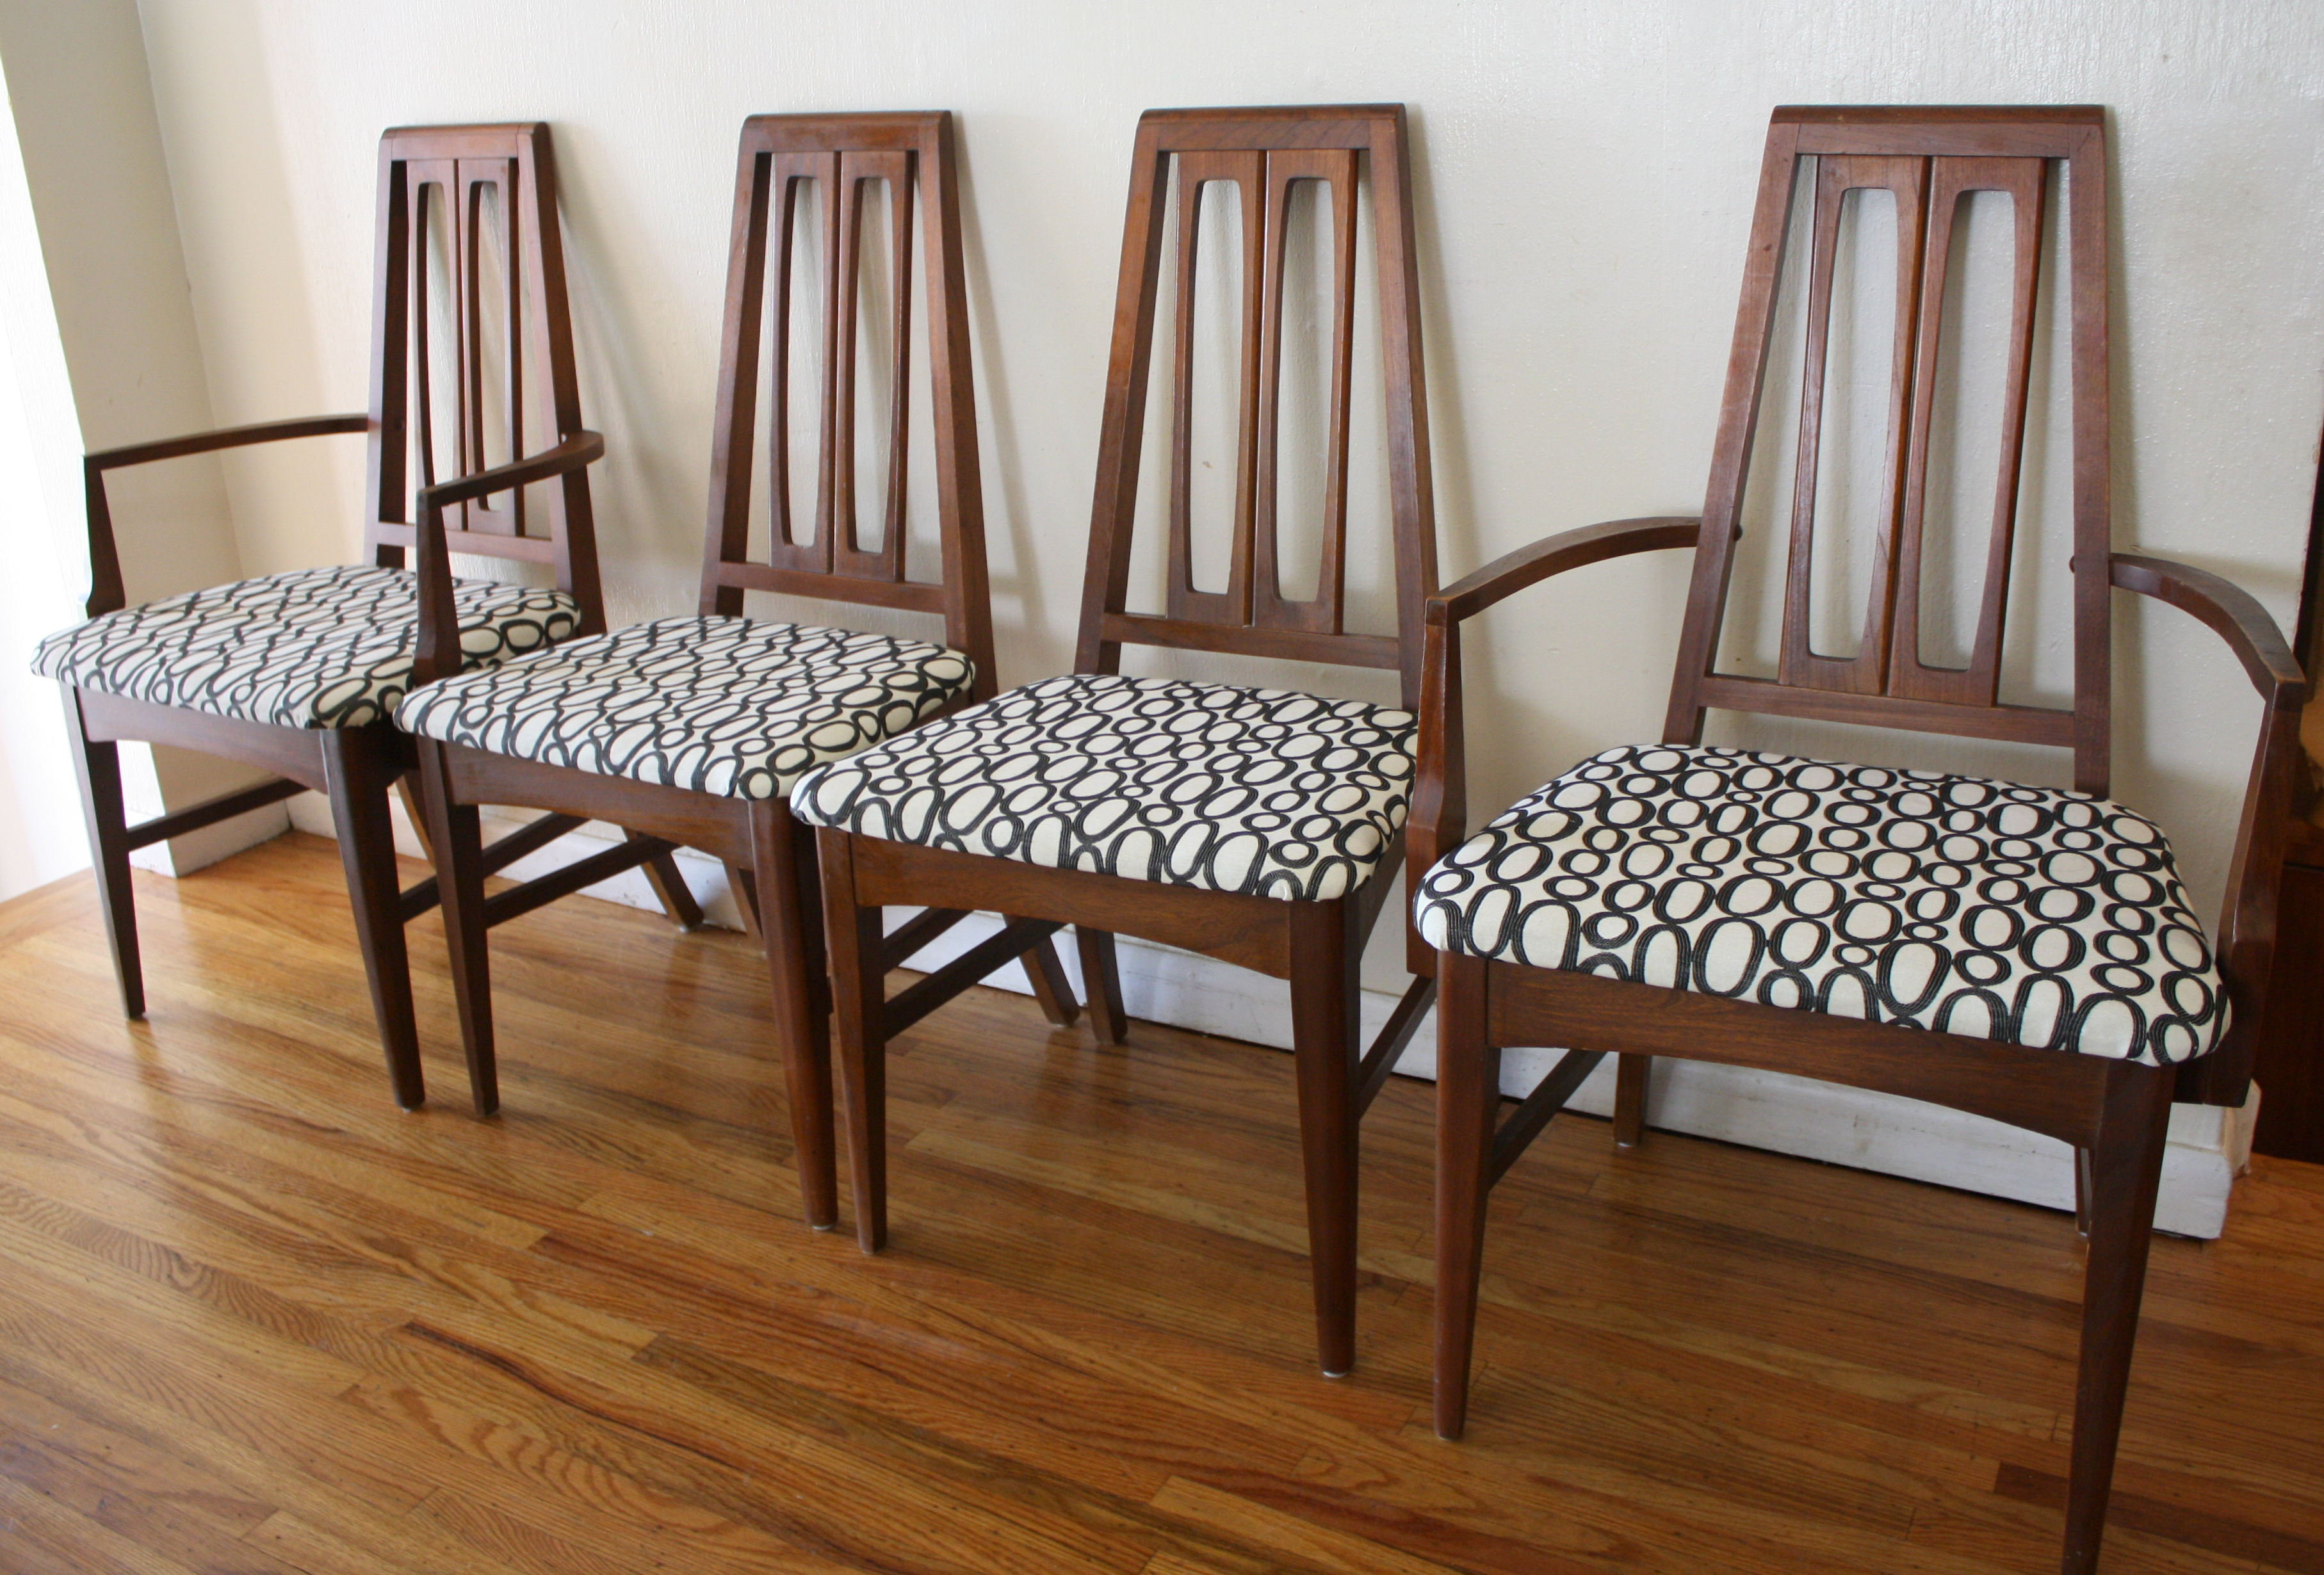 mid century modern dining chairs mid century kitchen chairs mcm sculpted geometric back dining chairs 1